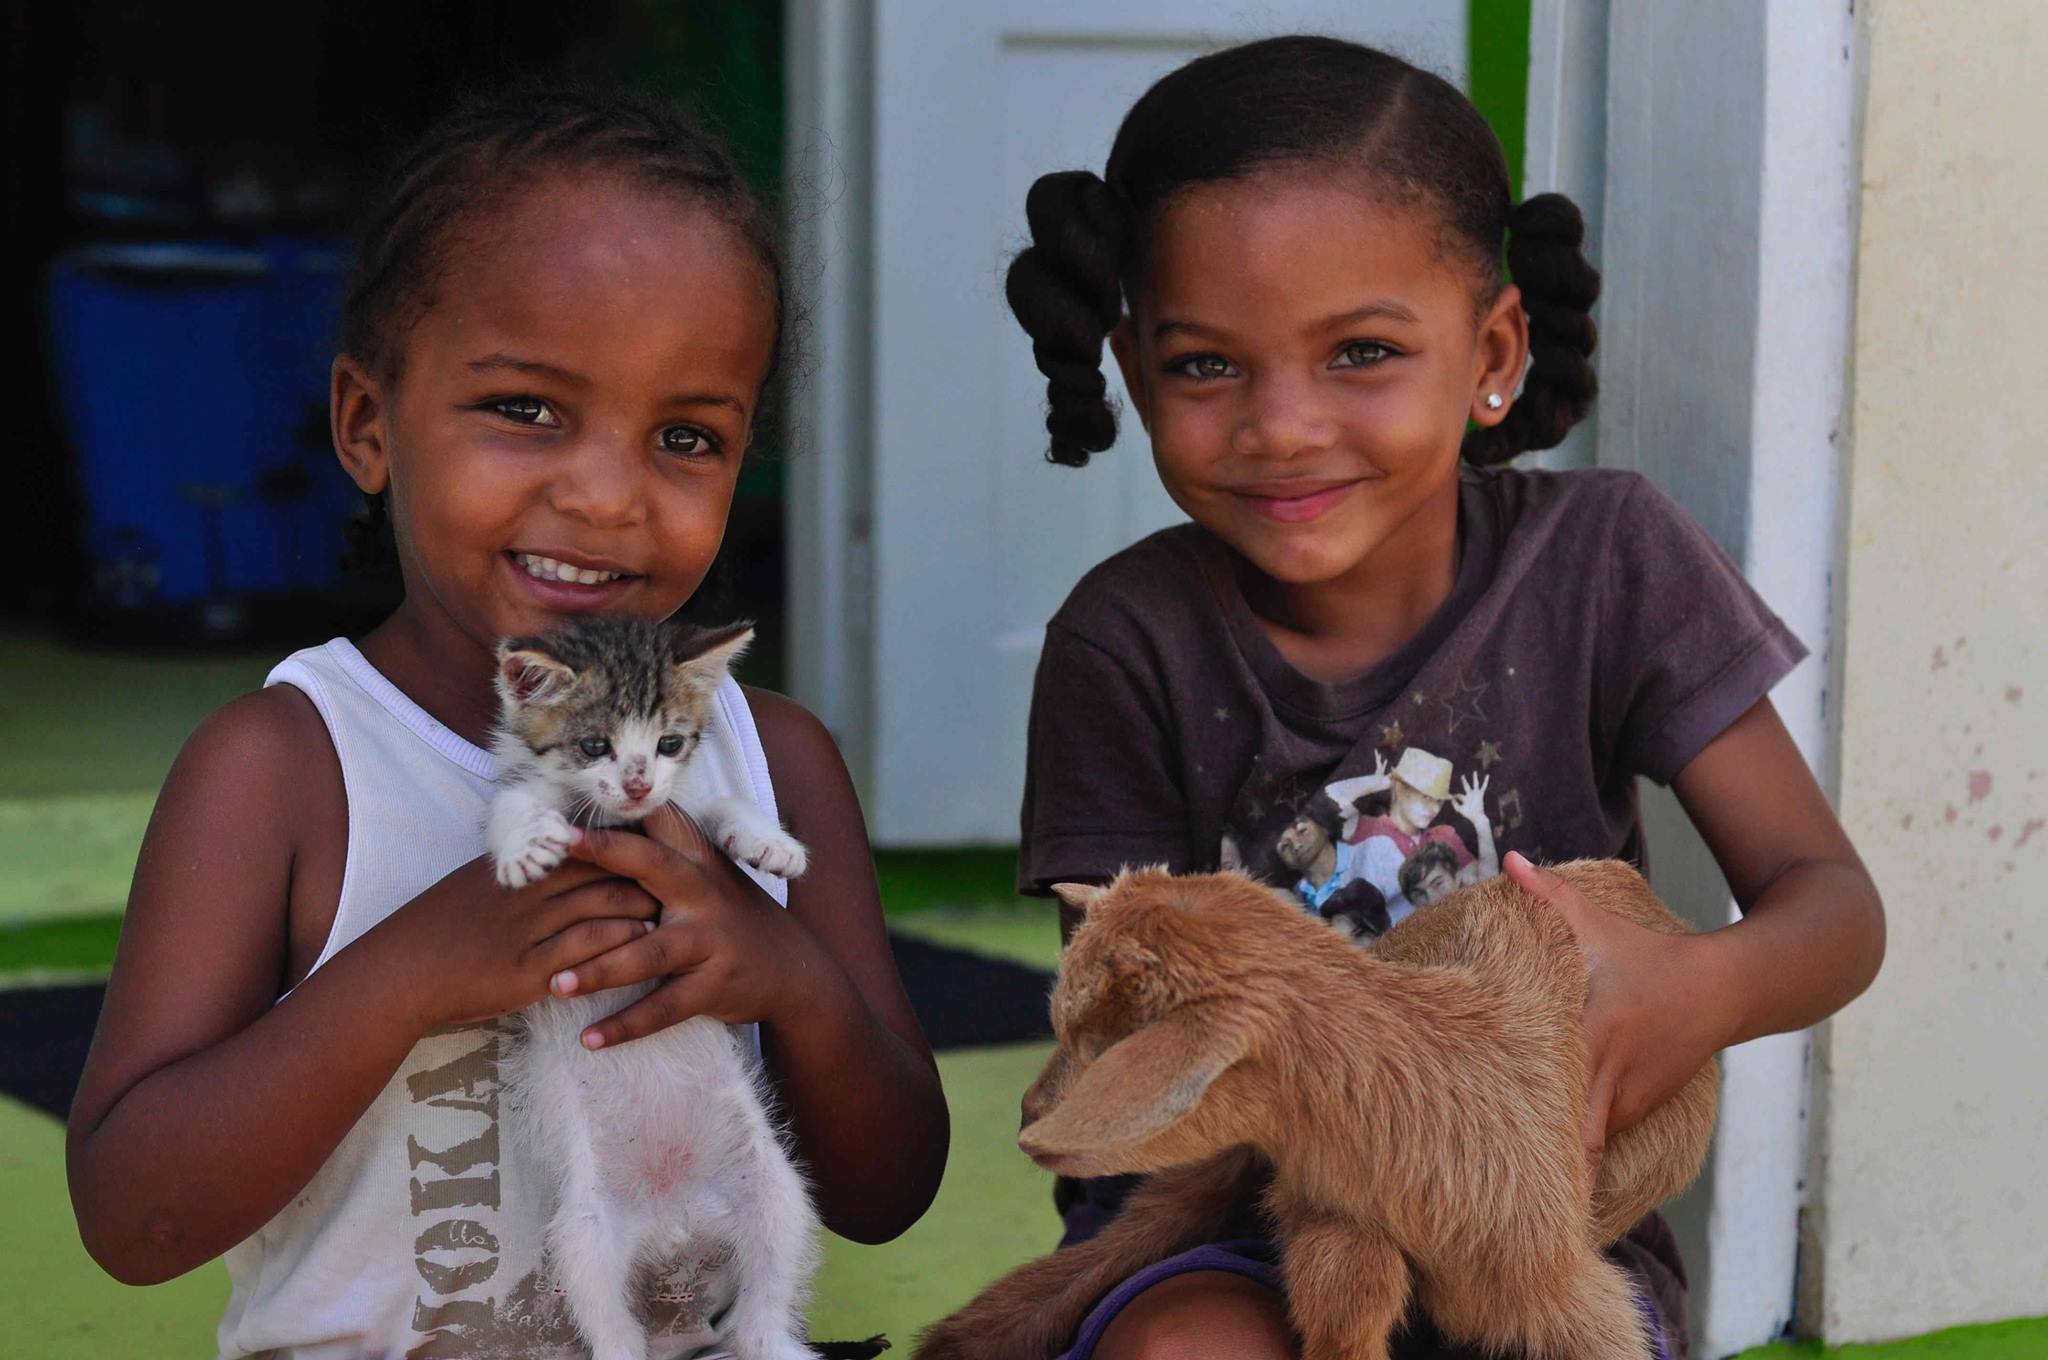 Southern Grenadines Animal Kindness - SGAK is a non-profit organization, born out of the dream of a few people in the Grenadines who have observed the effects of neglect, starvation, abuse and disease on the animals in the islands. The primary goal is to reduce birth rates and disease. They also hope to better educate younger people about care and abuse, while making an improvement to animal welfare on Union Island and Mayreau.